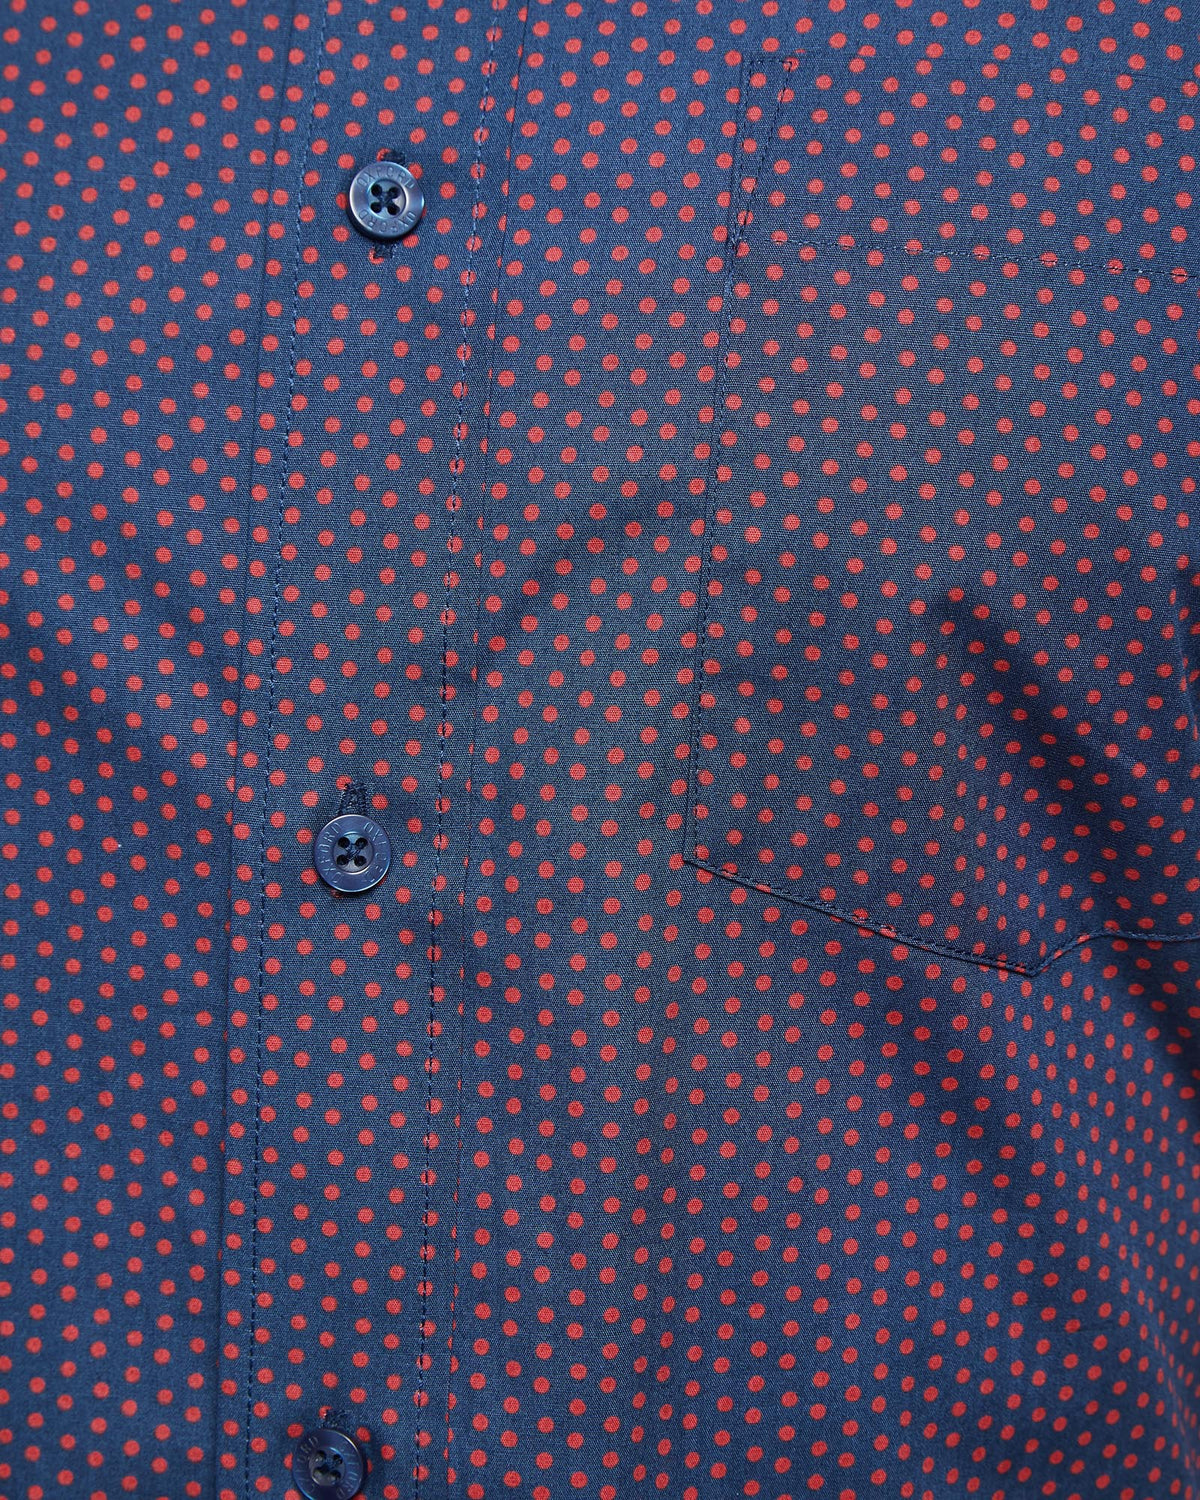 STRATTON SPOT PRINTED SHIRT